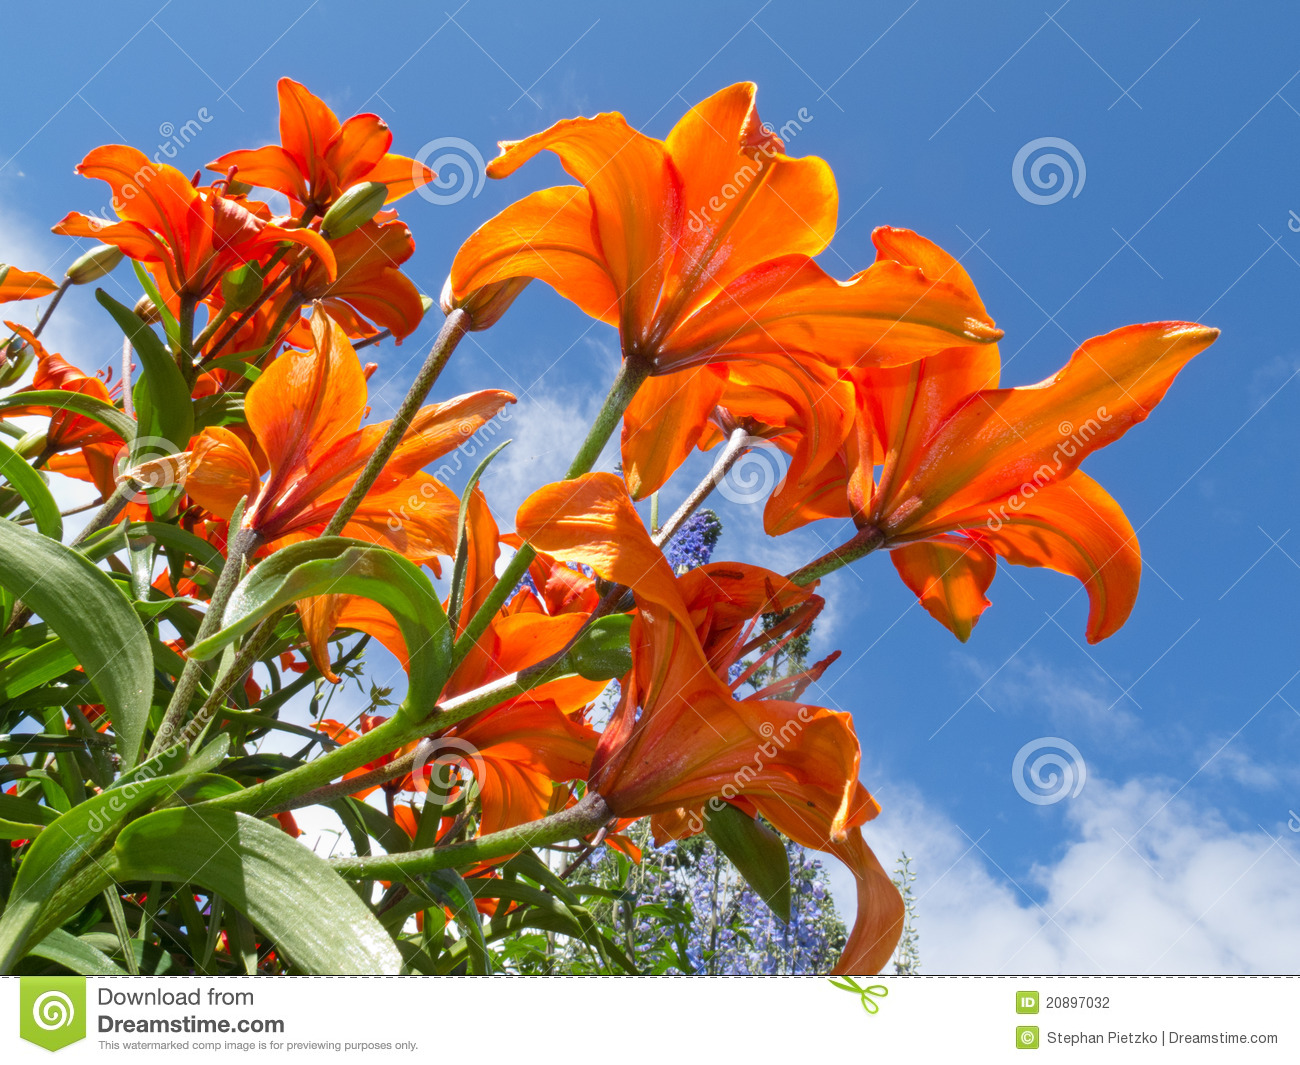 Red Orange Lily Flowers Close Up Against Blue Sky Stock Photo